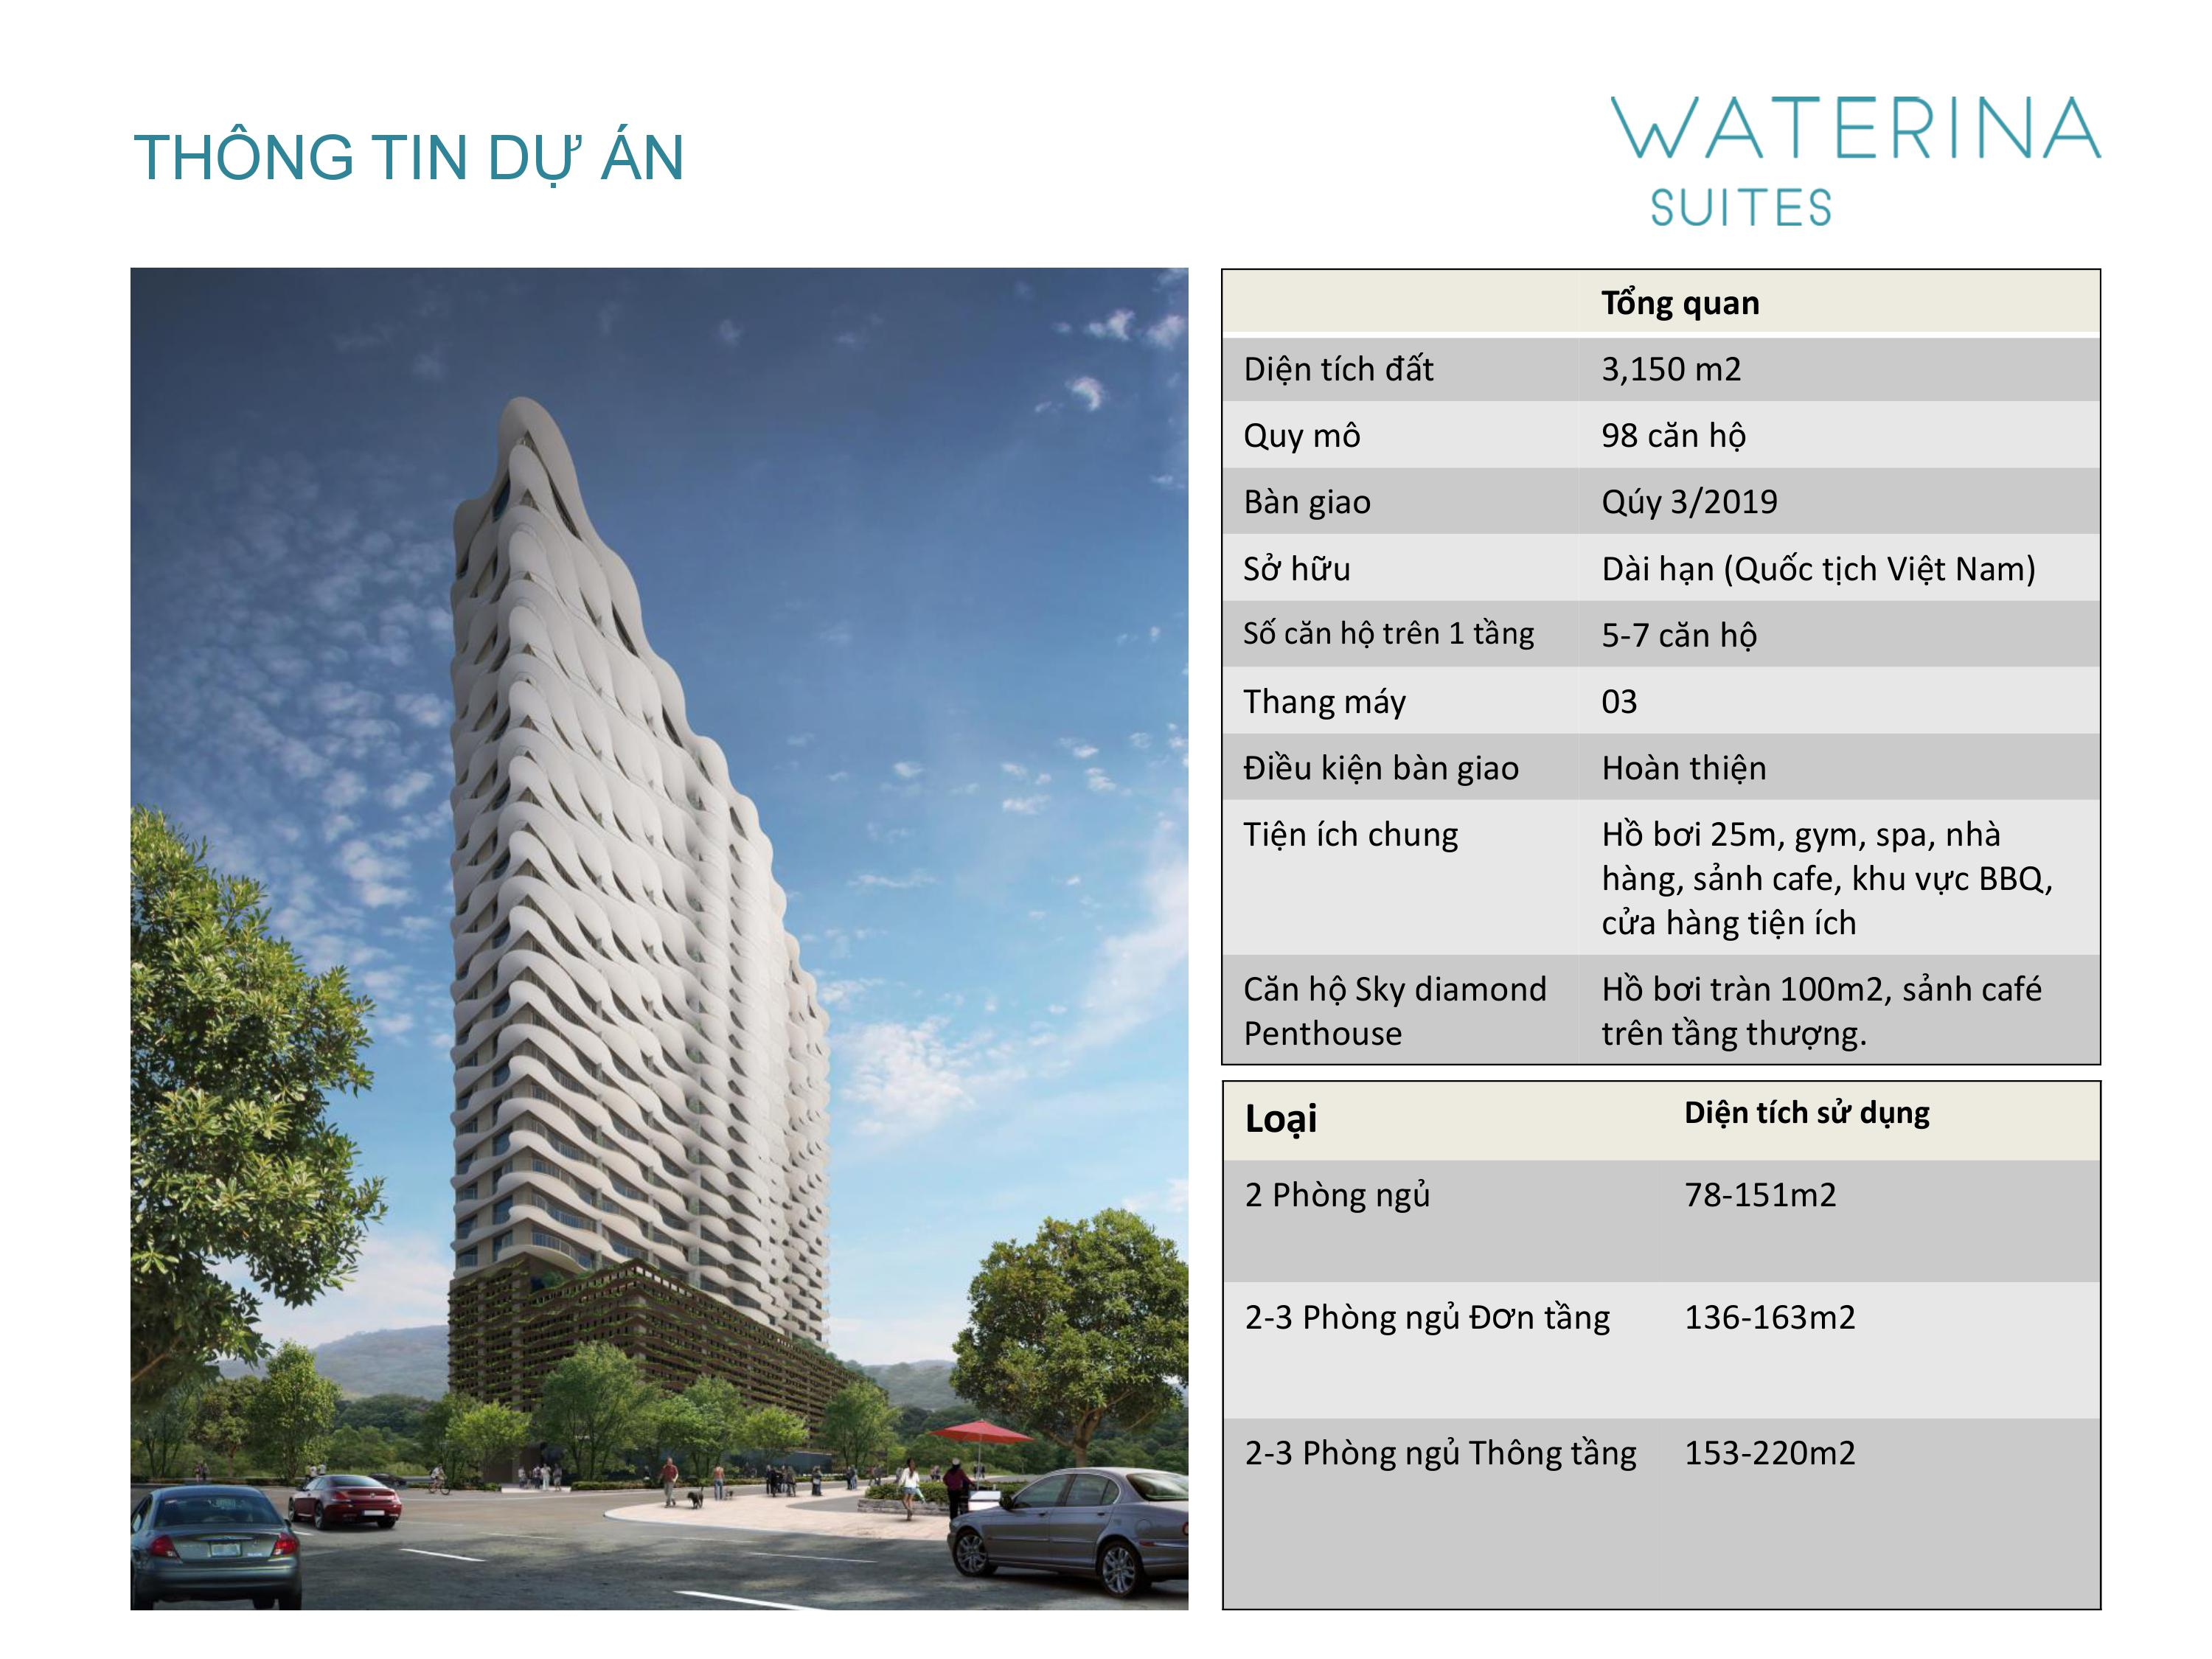 tong-quan-du-an-waterina-suites